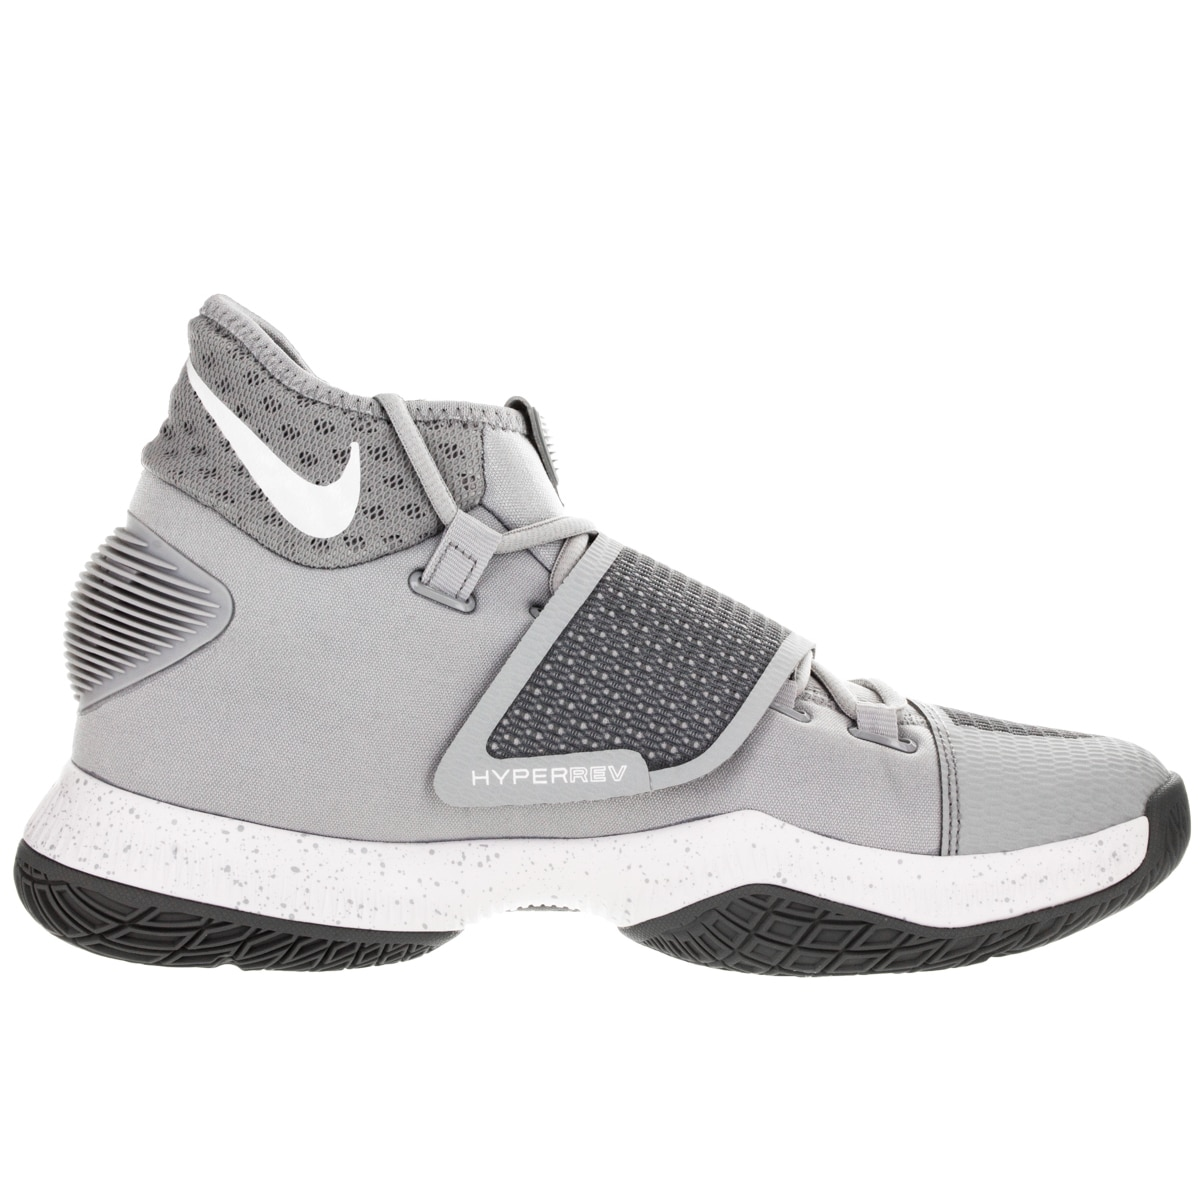 Nike Men's Zoom Hyperrev 2016 Wolf Grey/White/Cool Grey Basketball Shoe -  Free Shipping Today - Overstock.com - 19160546